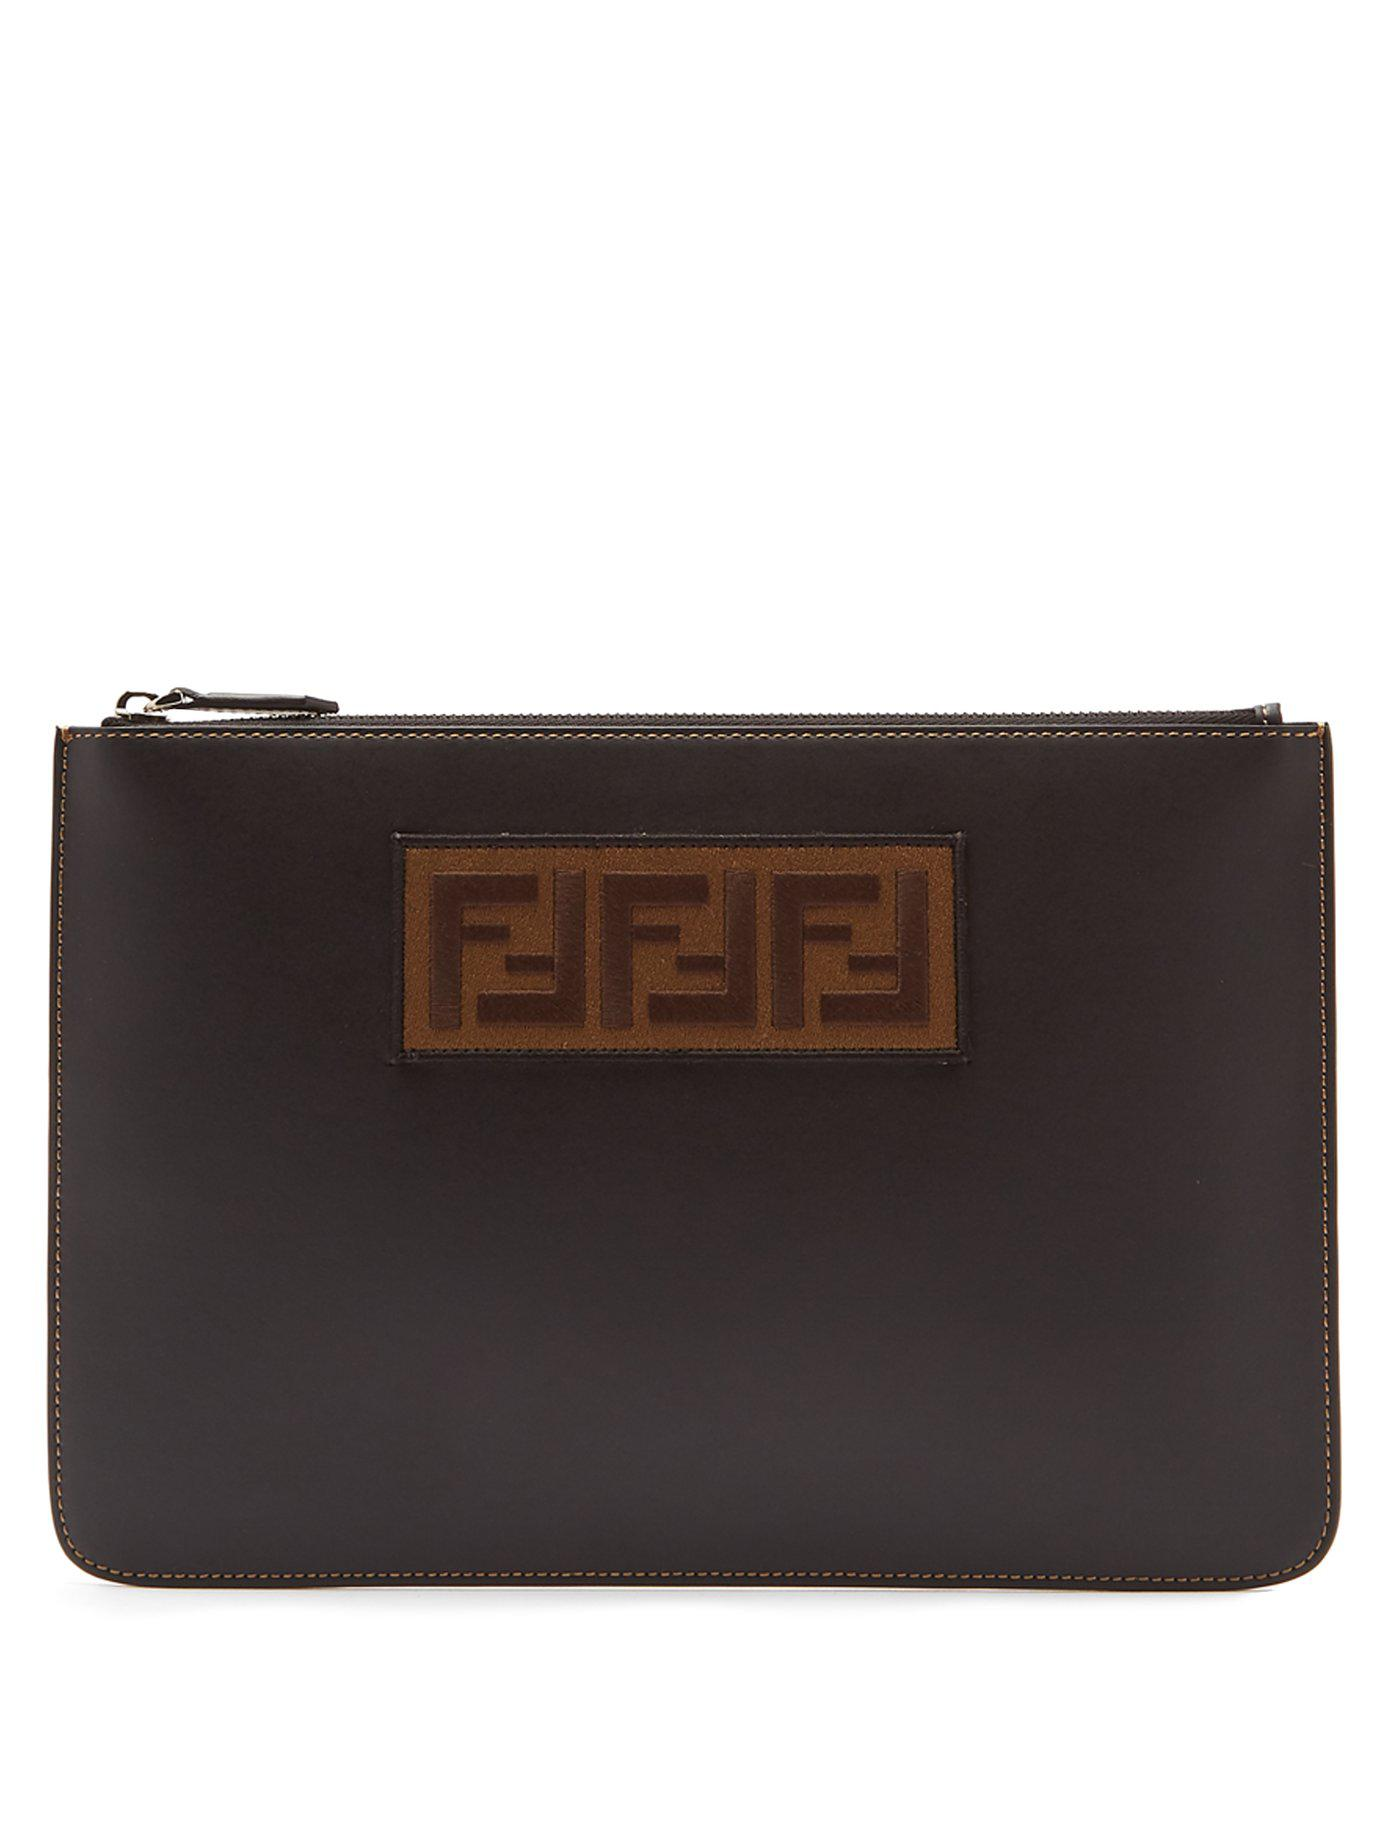 Lyst - Fendi Logo Patch Leather Pouch in Black for Men 17210d083e748